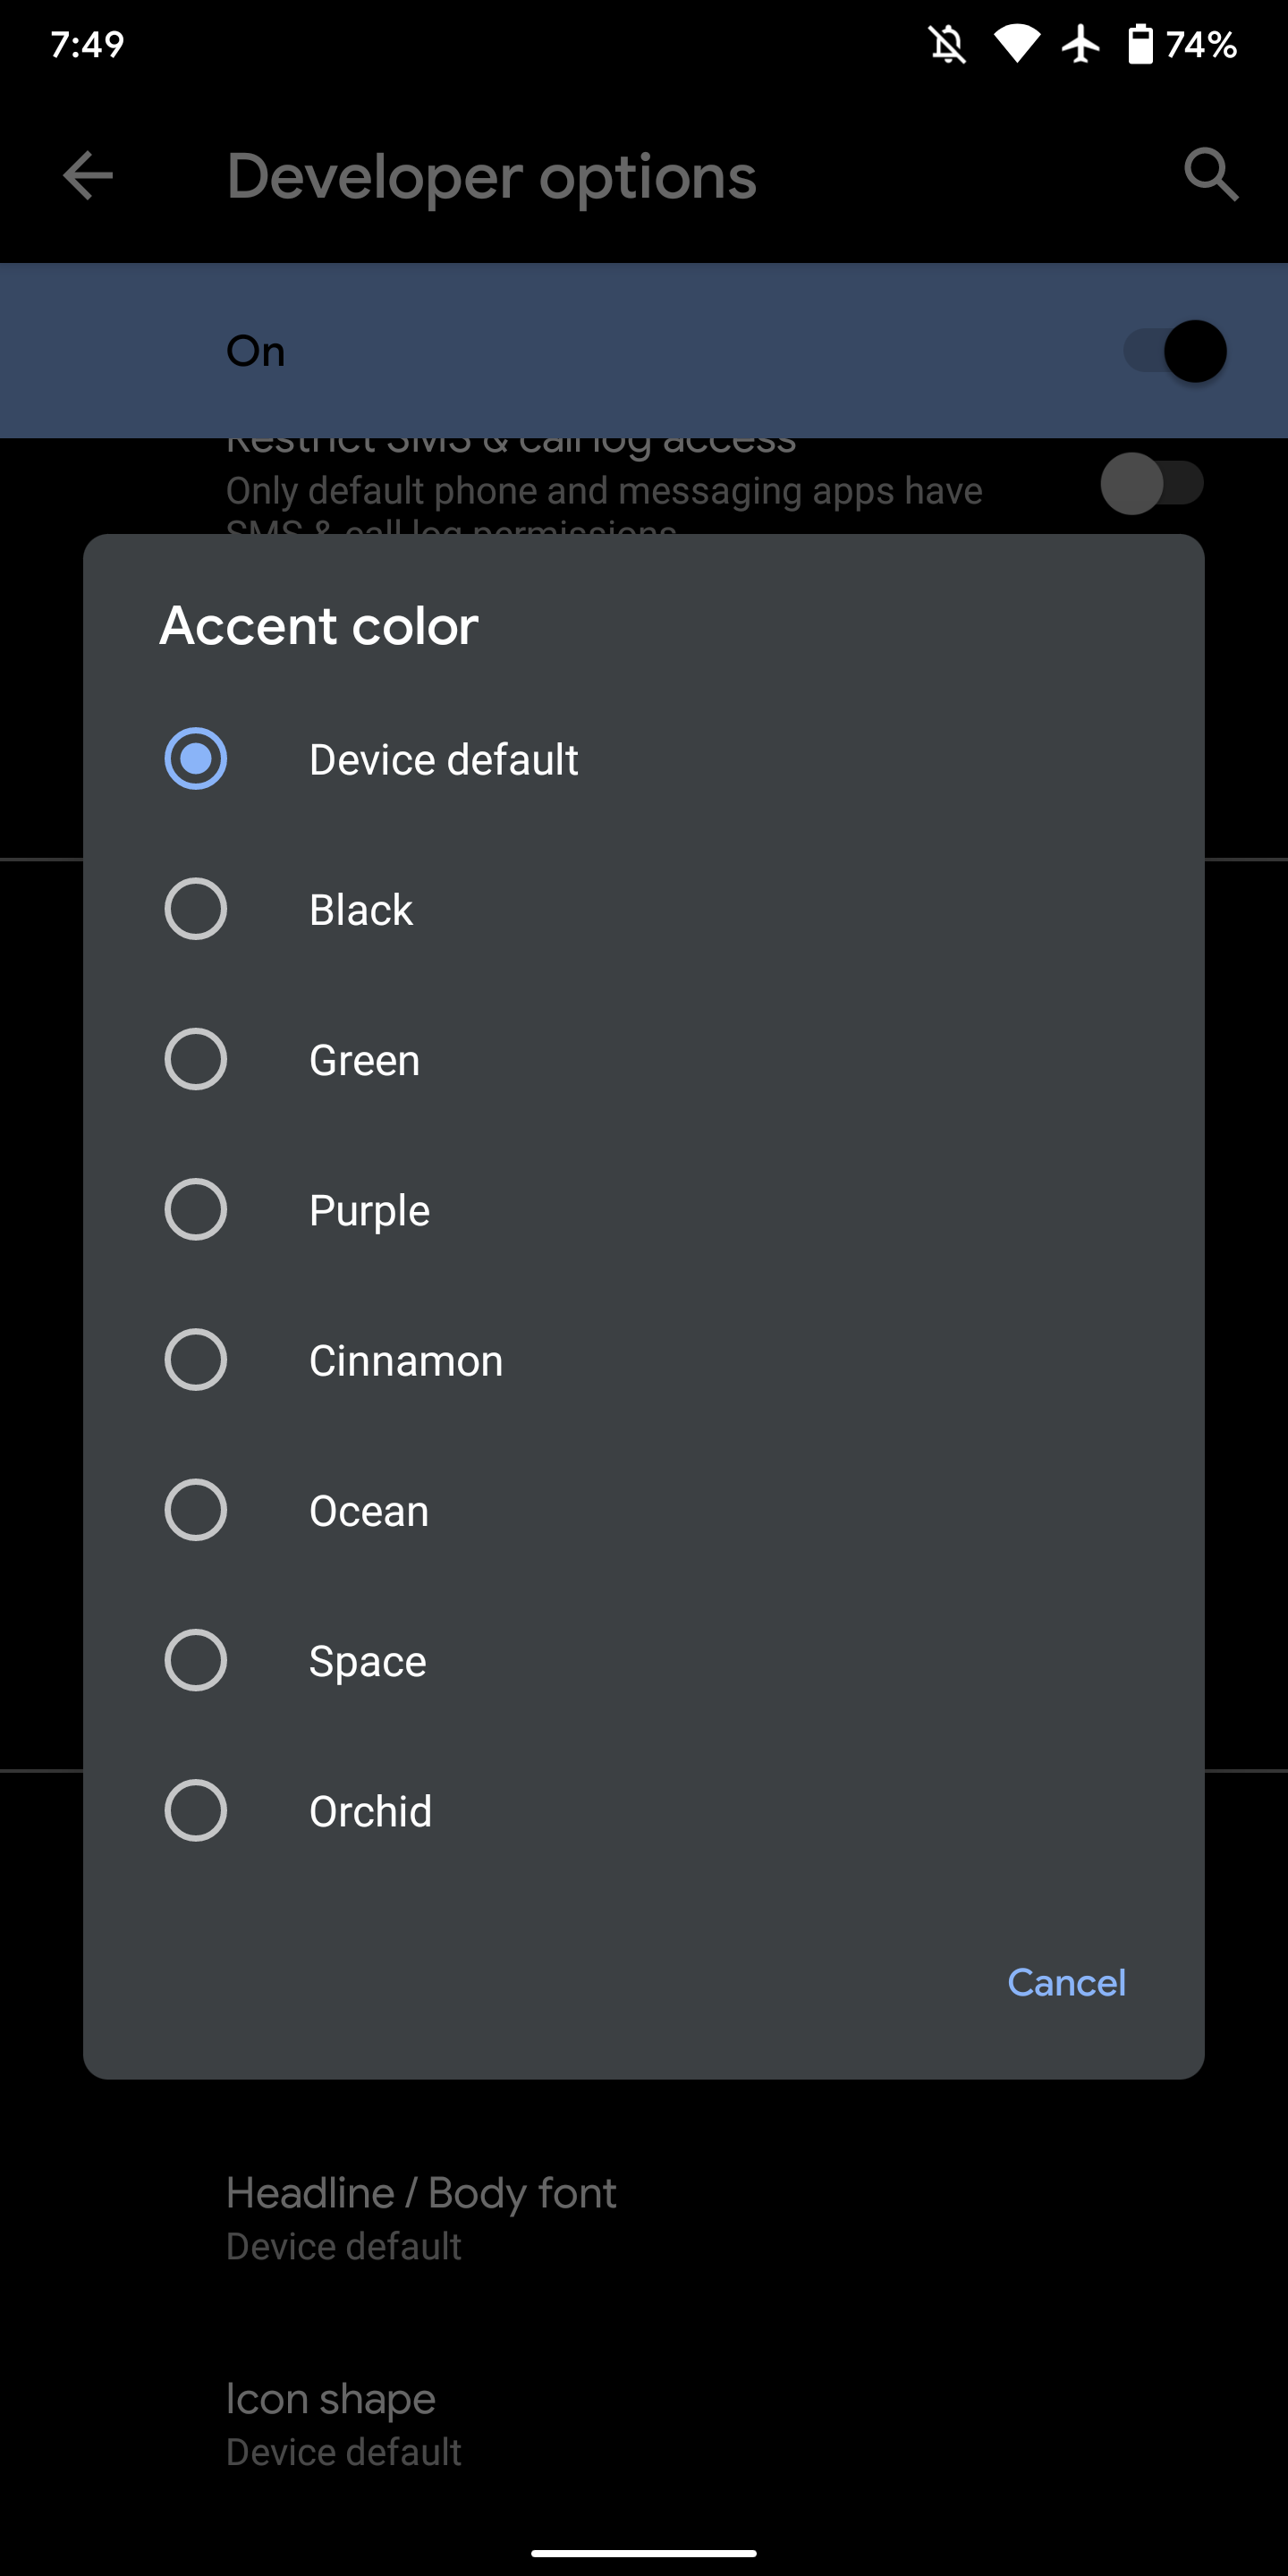 Android 10 Settings hints at style, clock Pixel